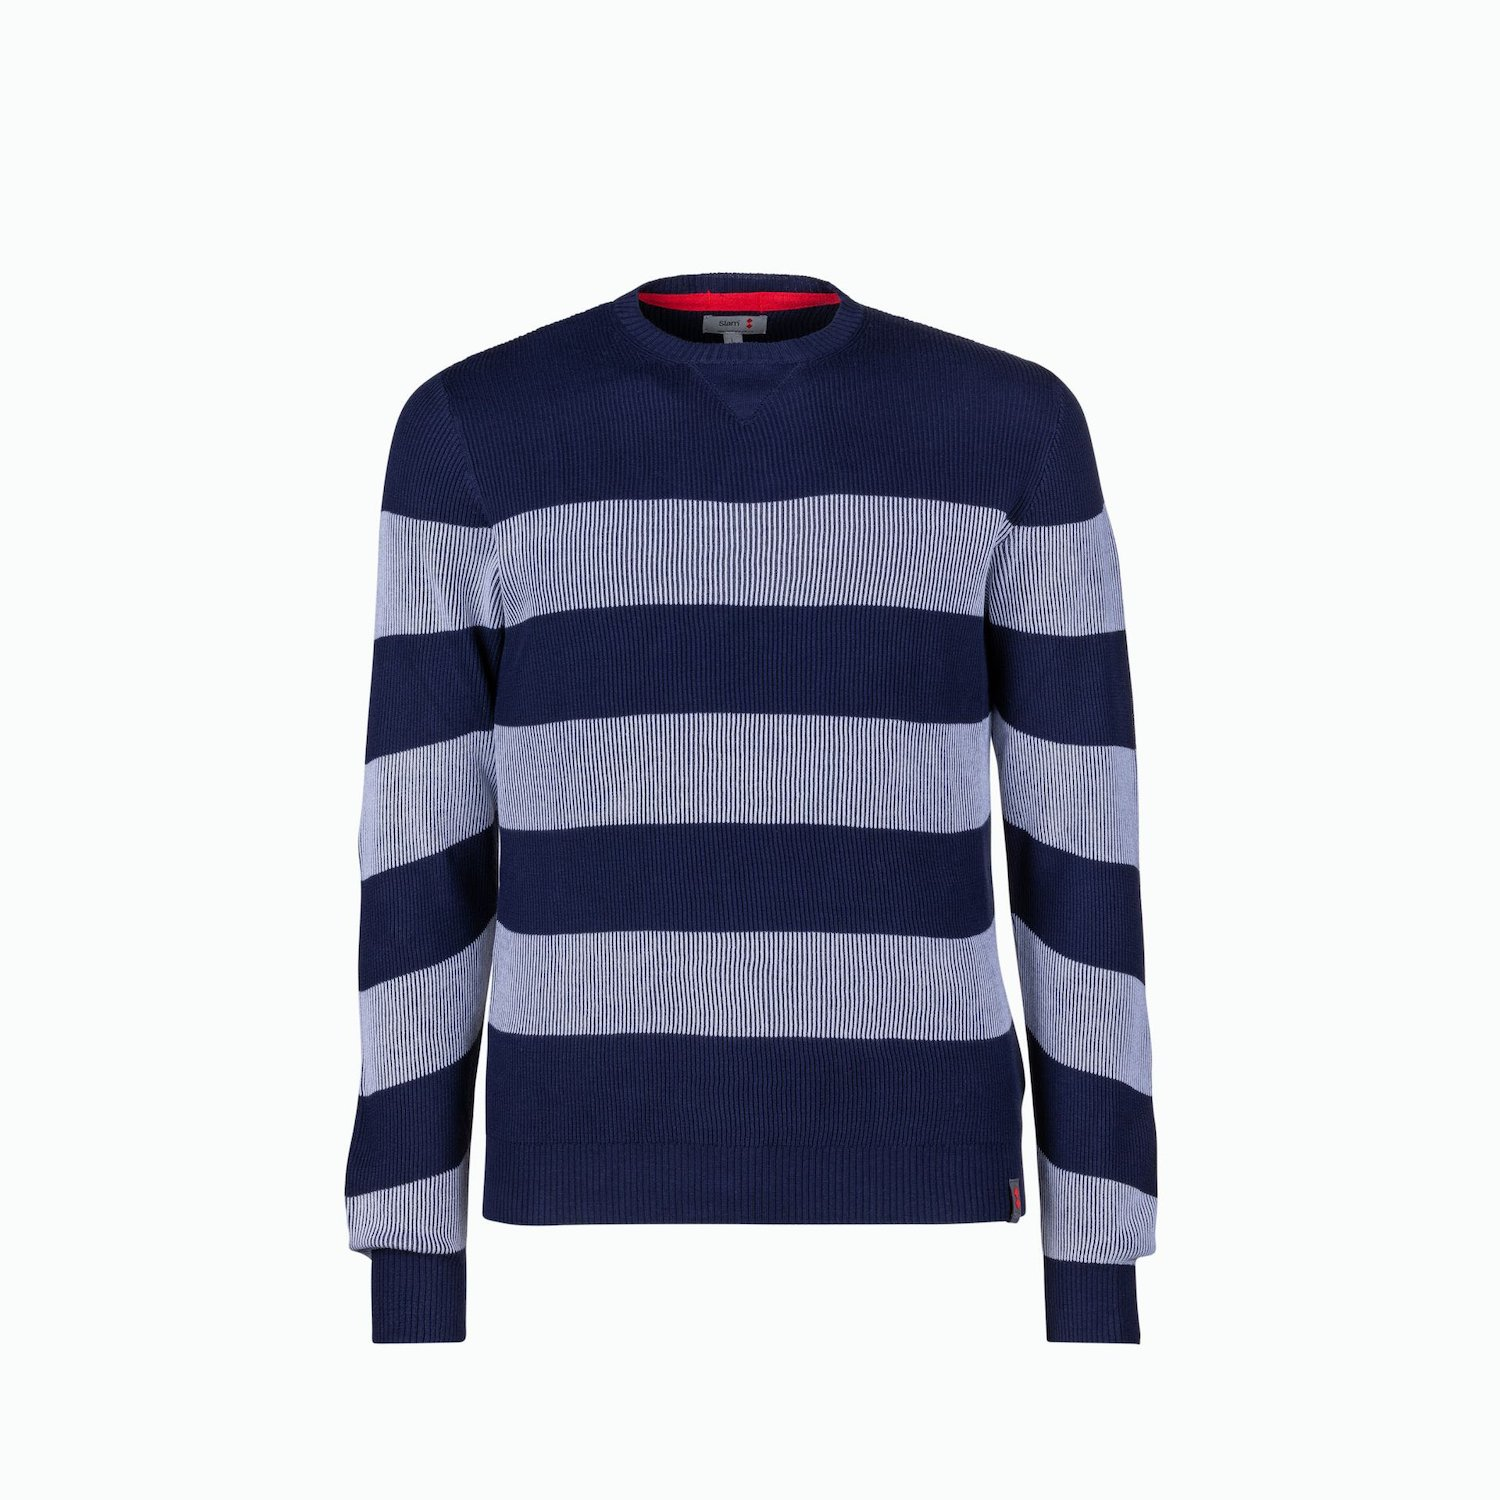 C209 Jumper - Navy / White